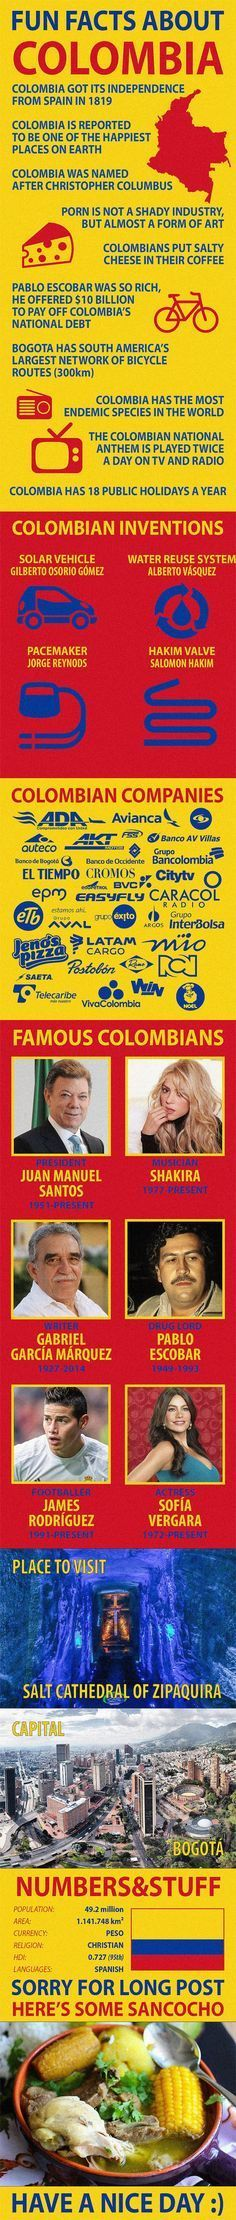 Best #facts about #Colombia #funfacts #SouthAmericaTravelGirl